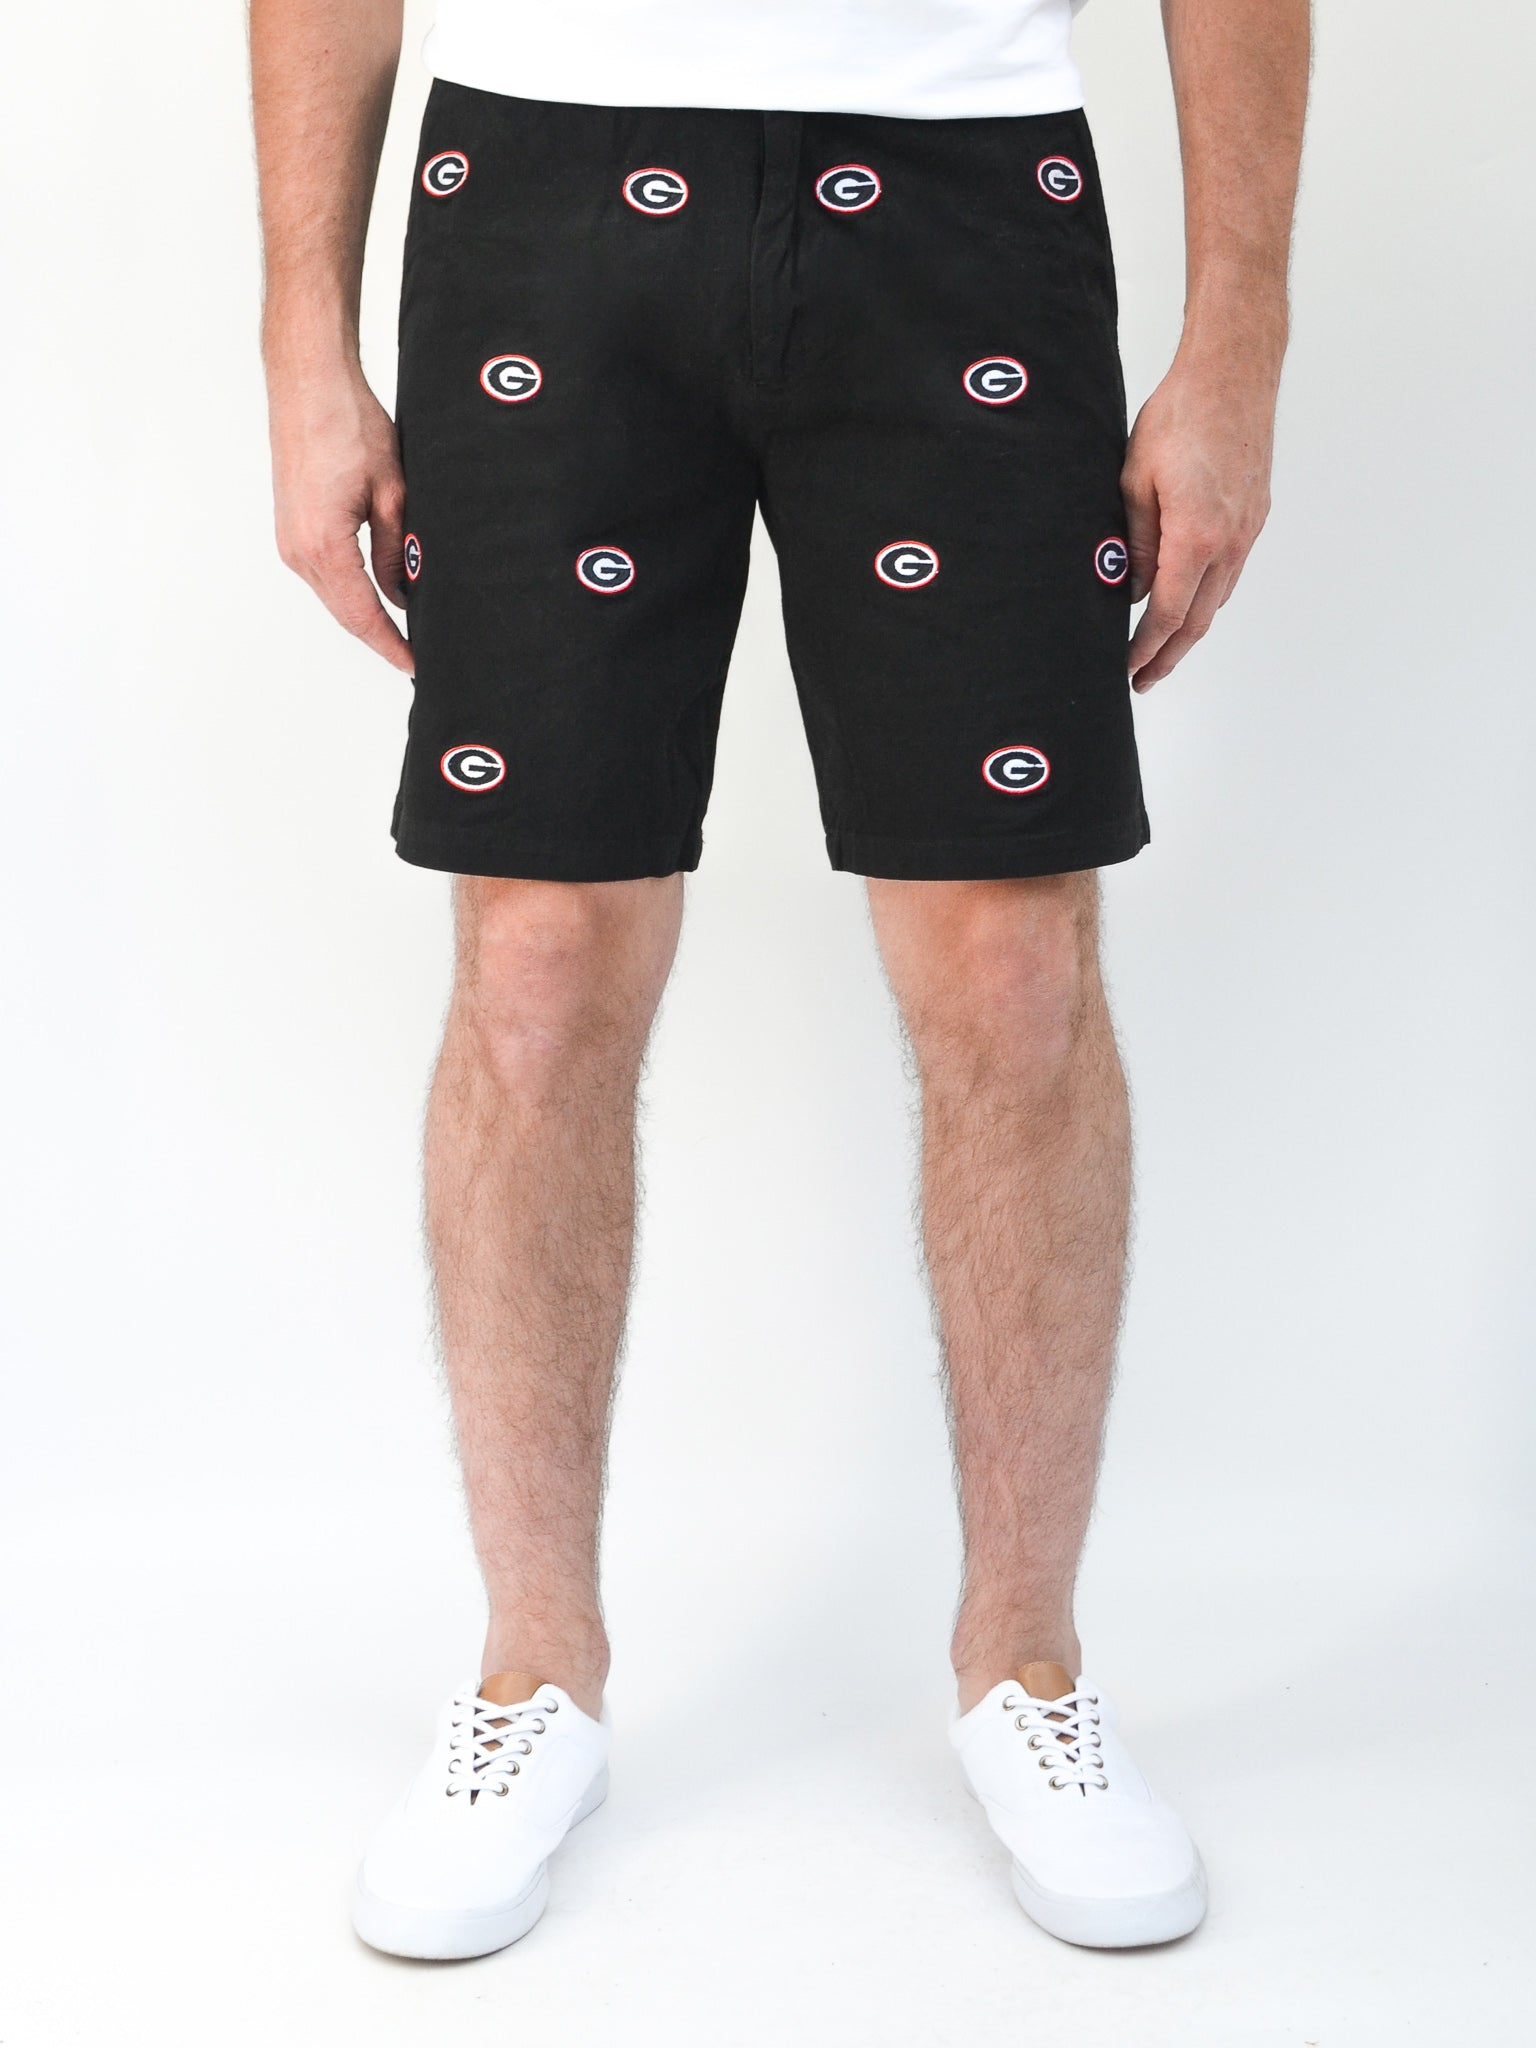 Georgia G Black Shorts